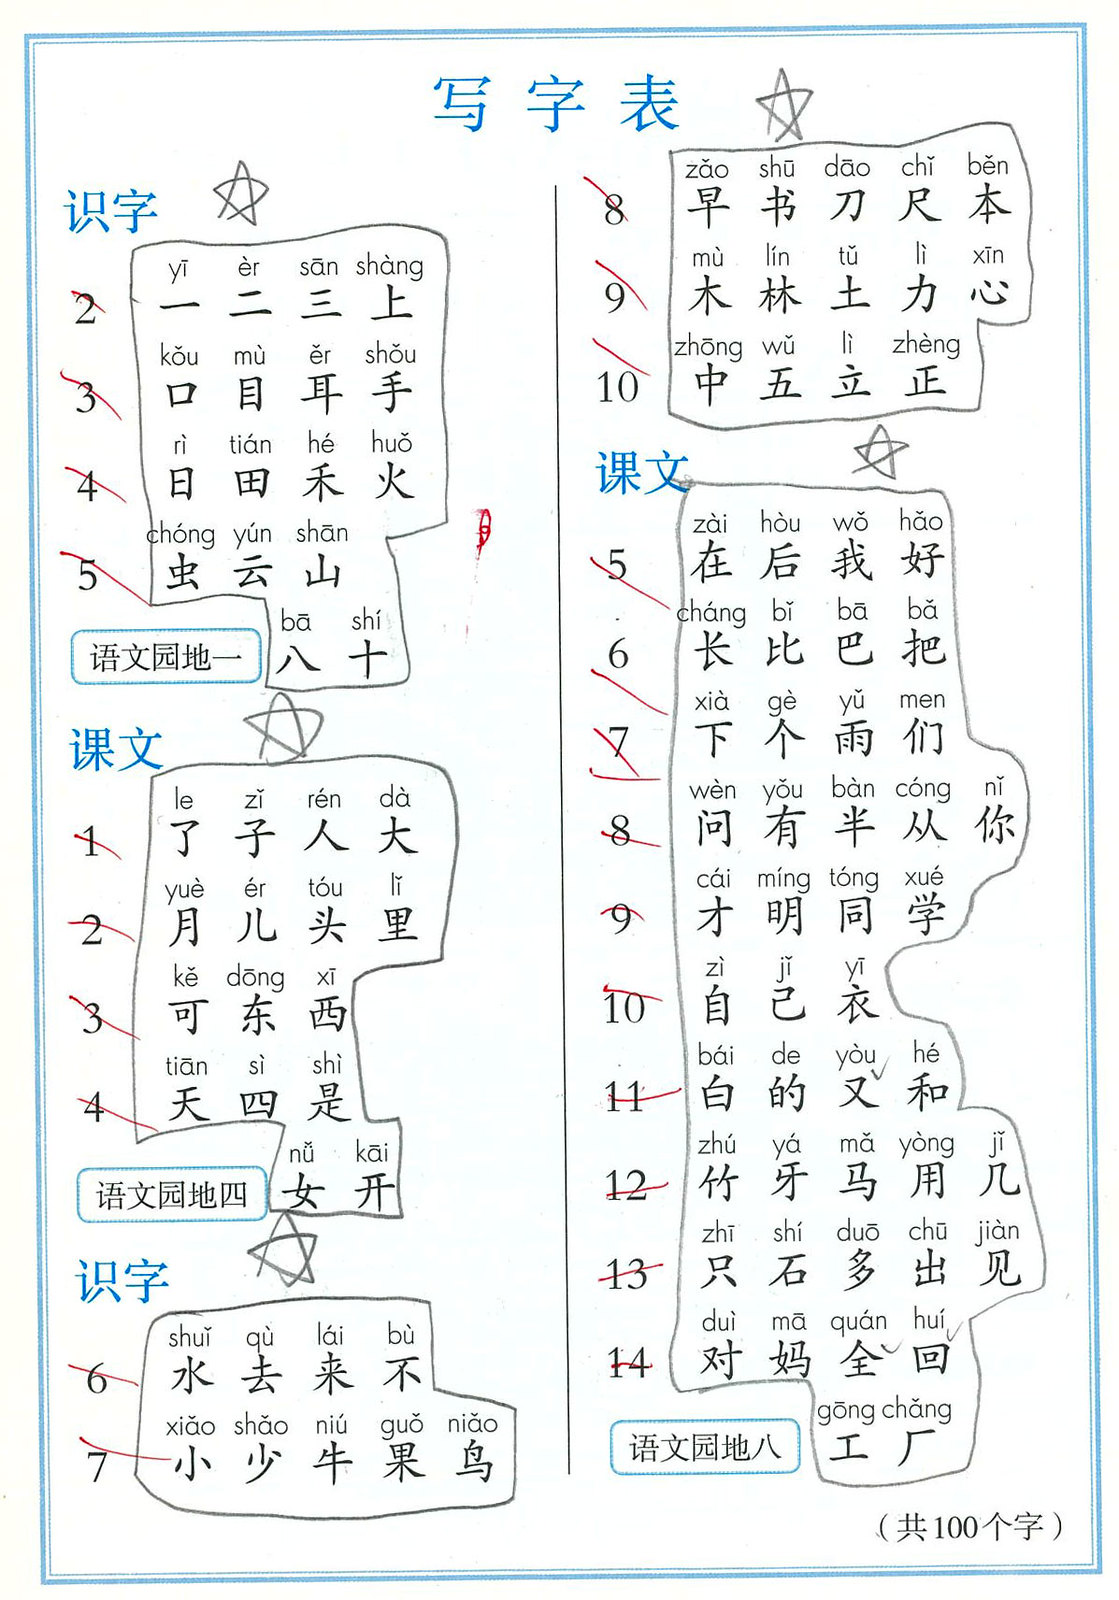 1st Grade Textbook (China, 2018)